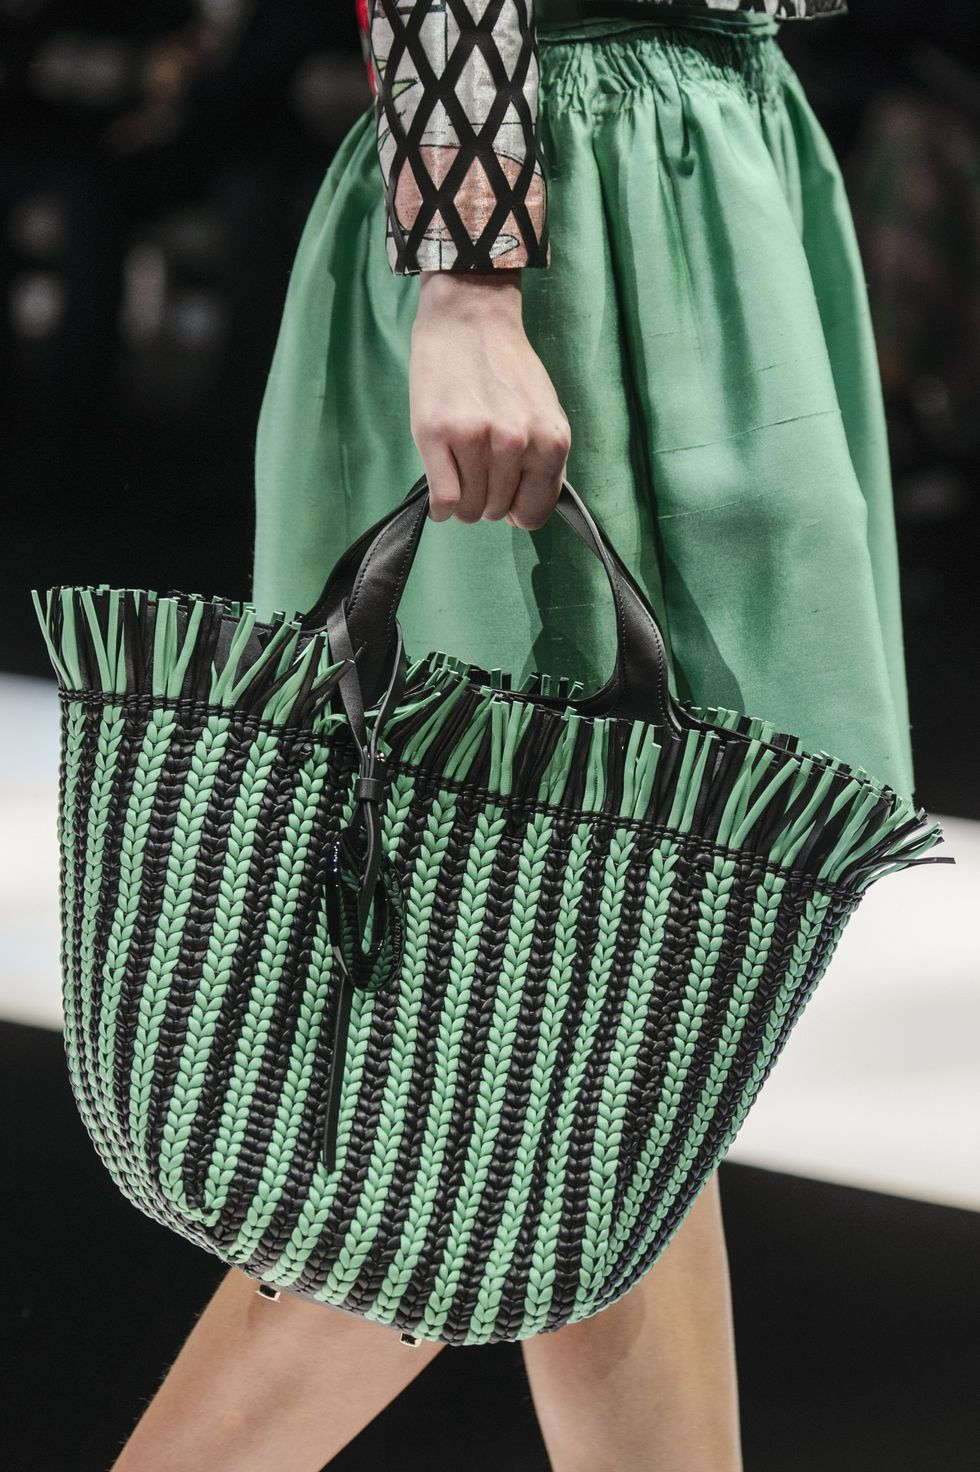 ab660370de37 Bag and Purse Trends Spring 2018 - Runway Bags Spring 2018